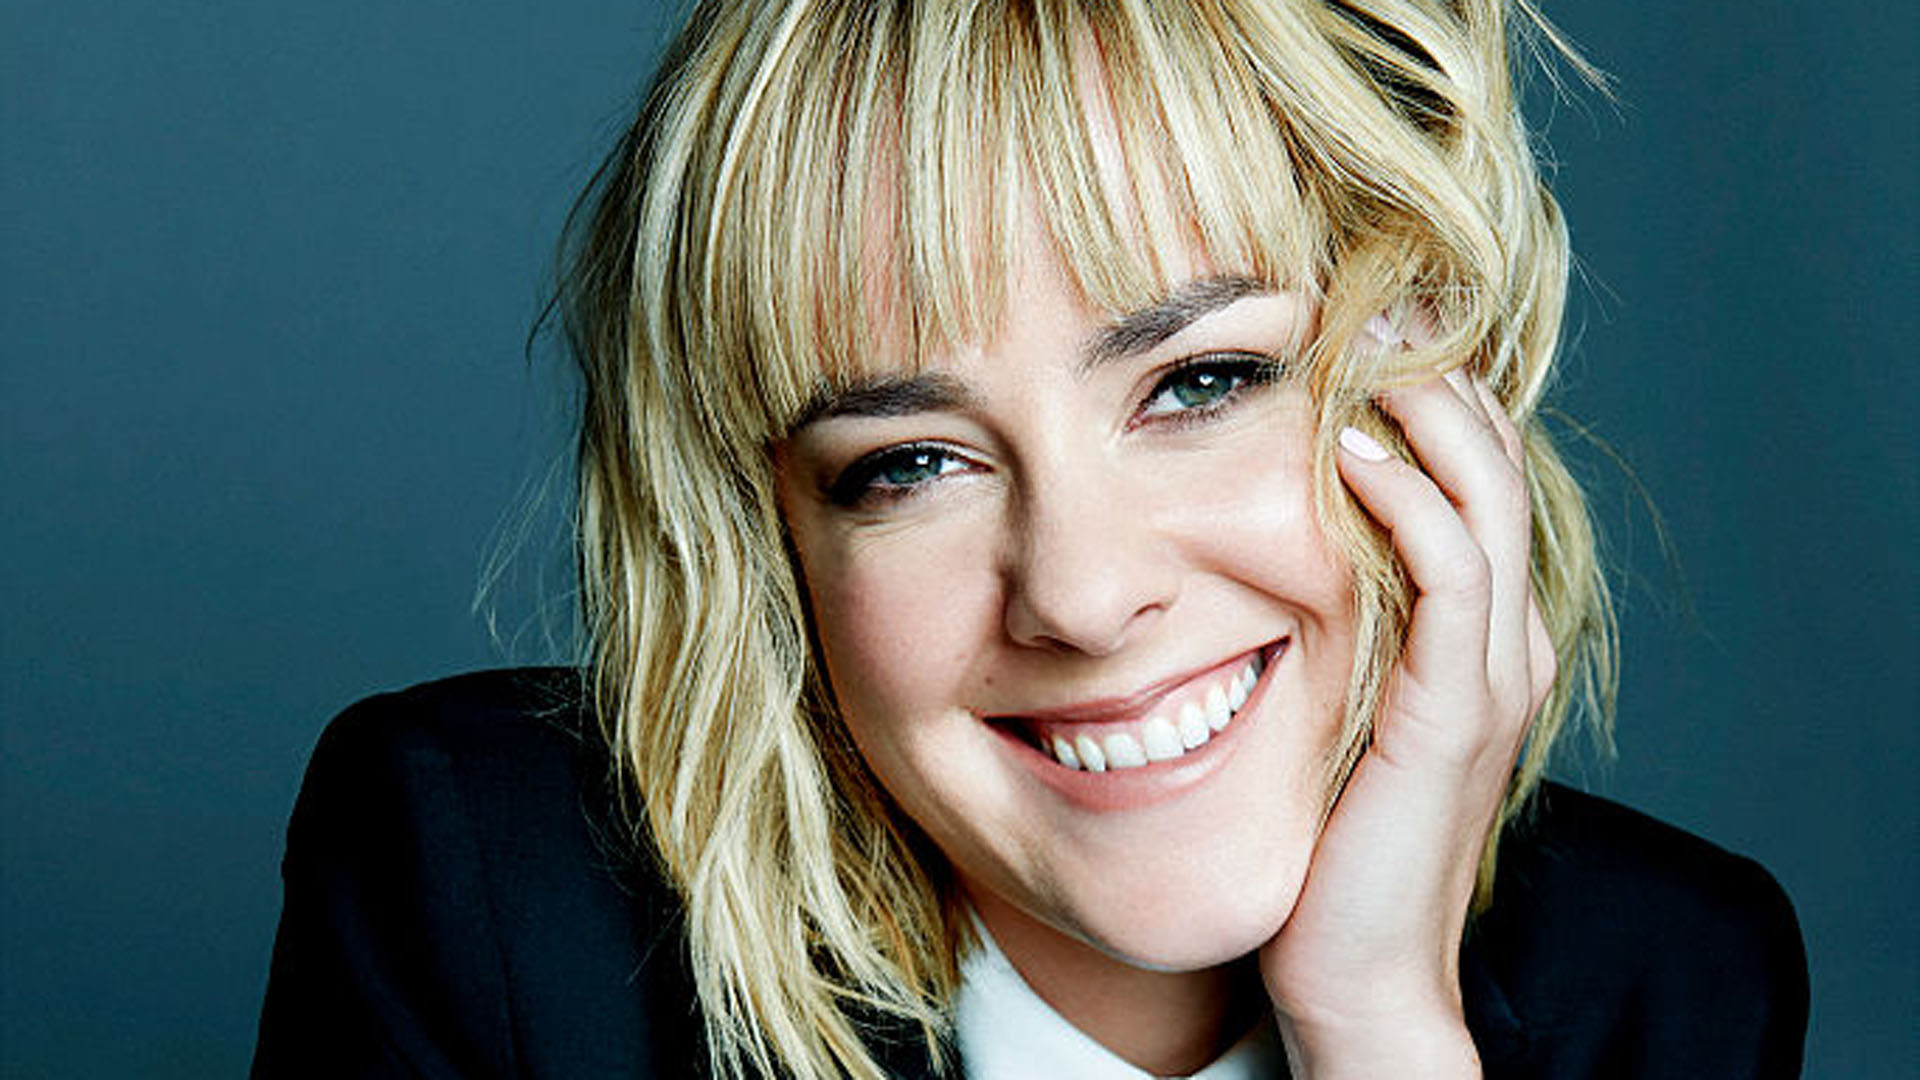 Jena Malone Wallpapers High Resolution and Quality Download